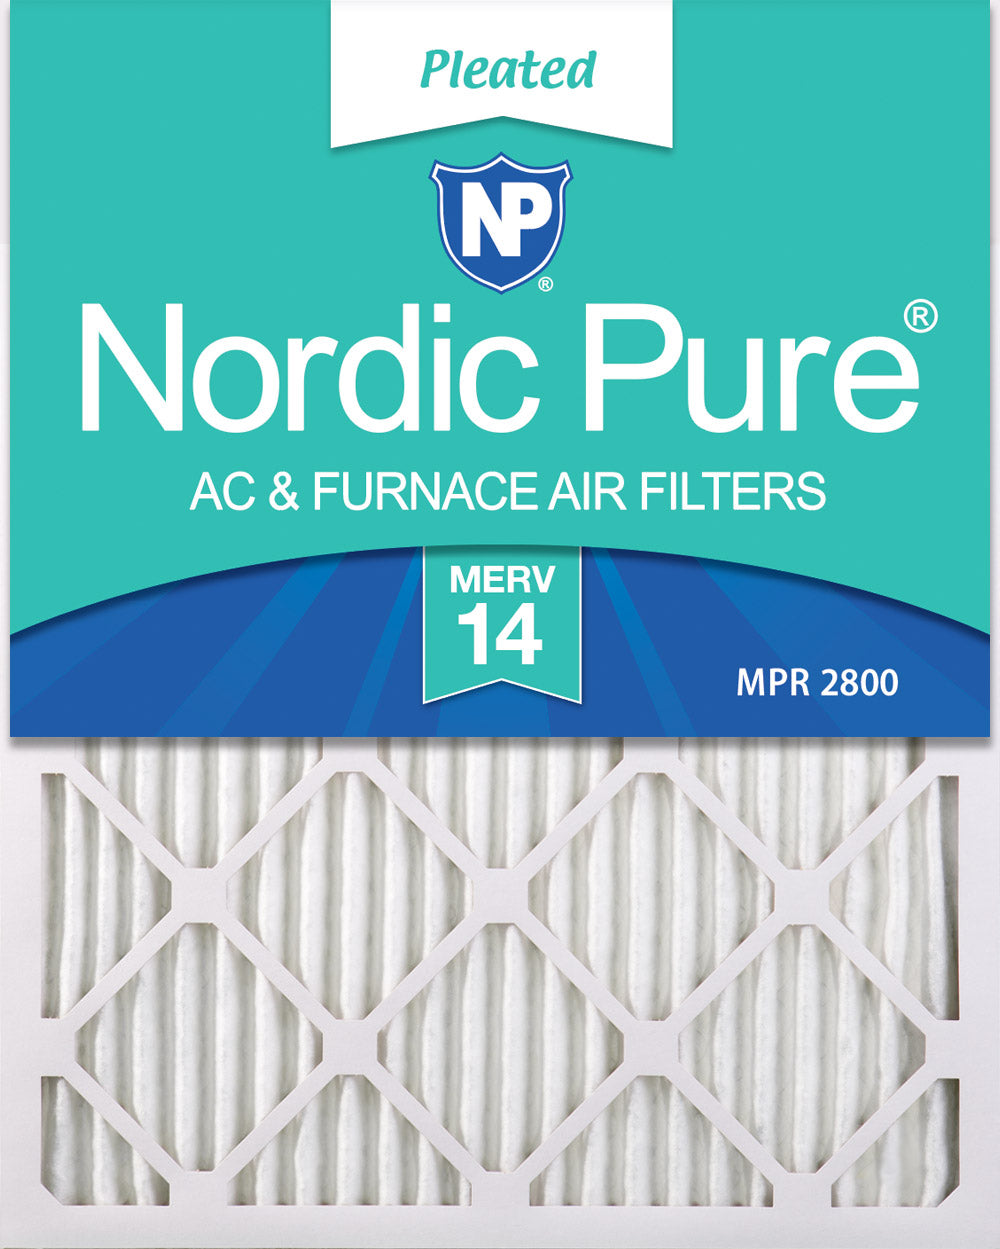 20x24x1 Pleated MERV 14 Air Filters 6 Pack